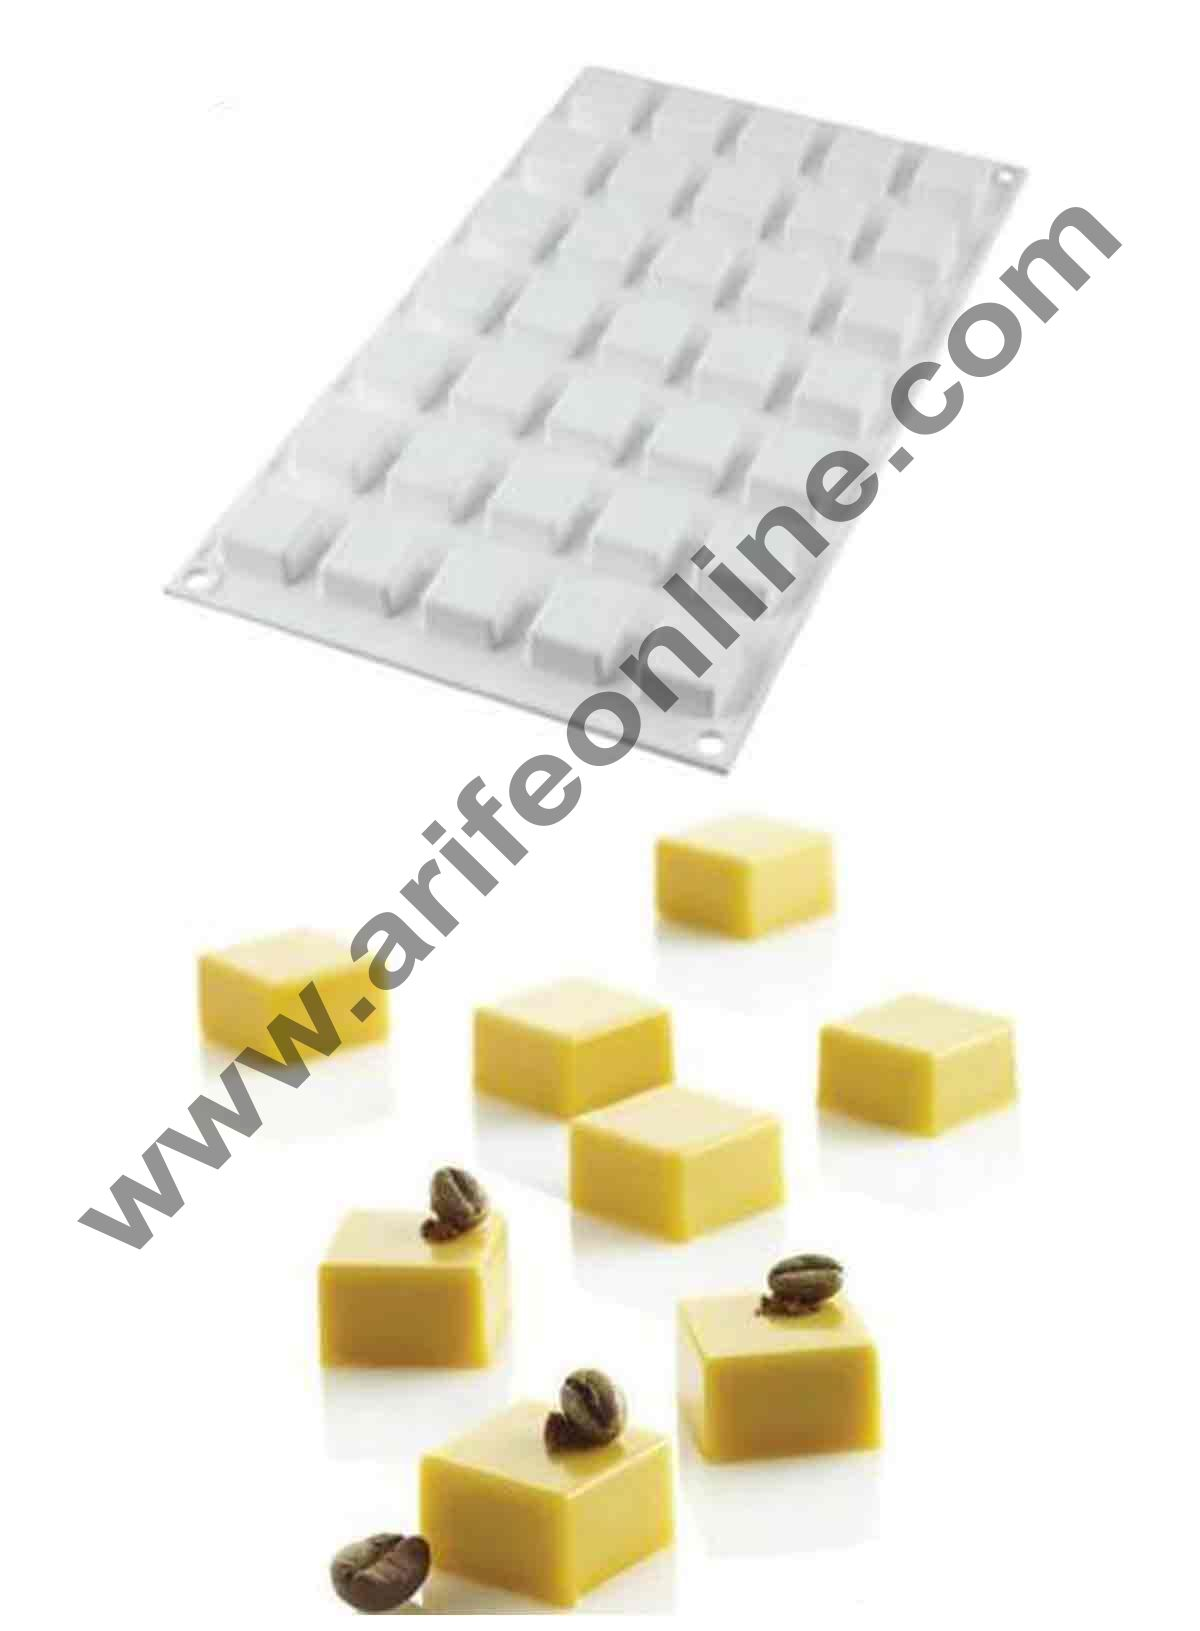 Cake Decor Silicon Micro Square Design Cake Mould Mousse Cake Mould Silicon Moulds